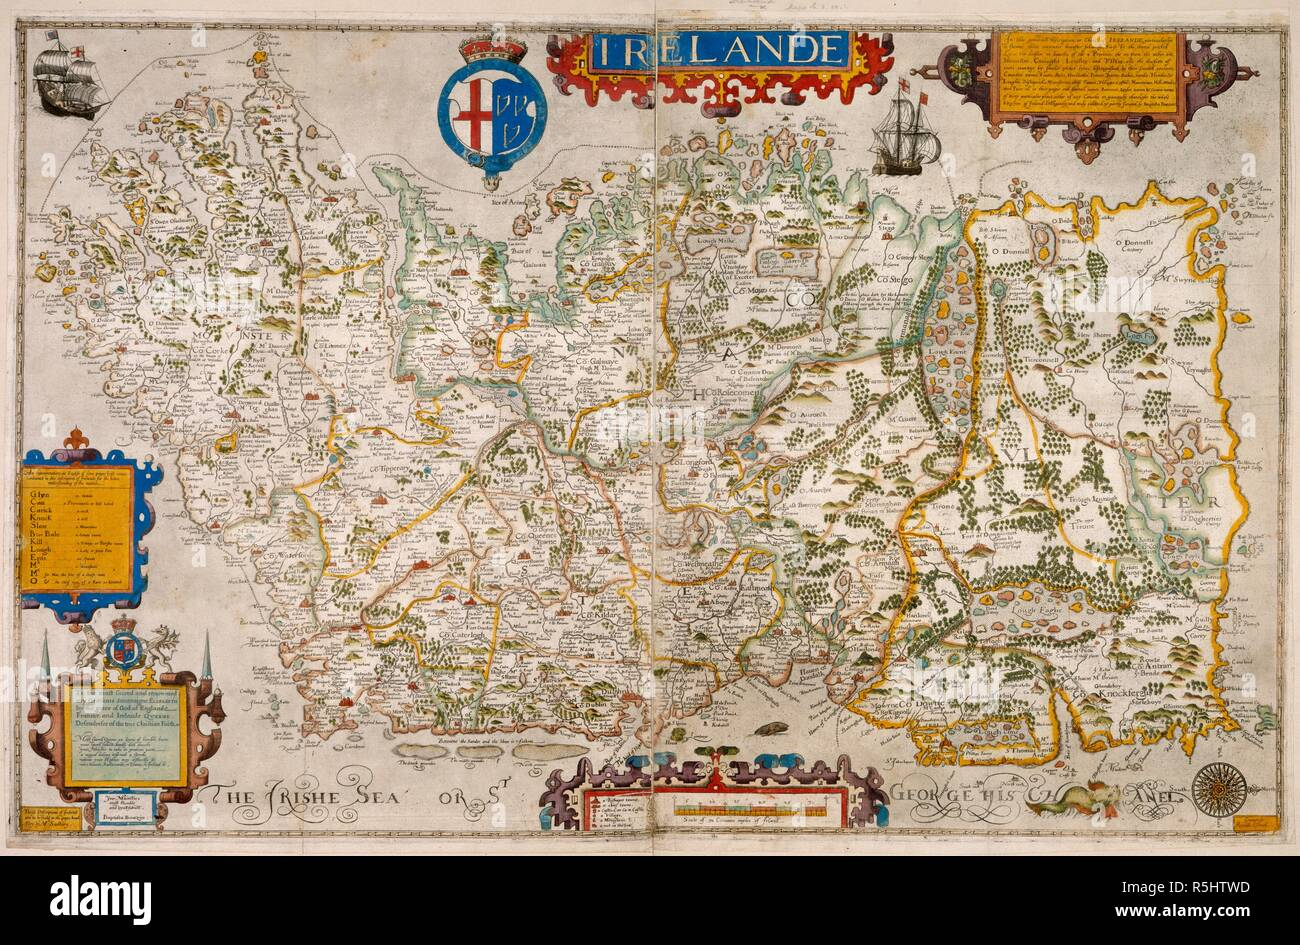 Os Map Of Ireland.A Map Of Ireland Dated 1599 Irelande Signed Baptista Boazio